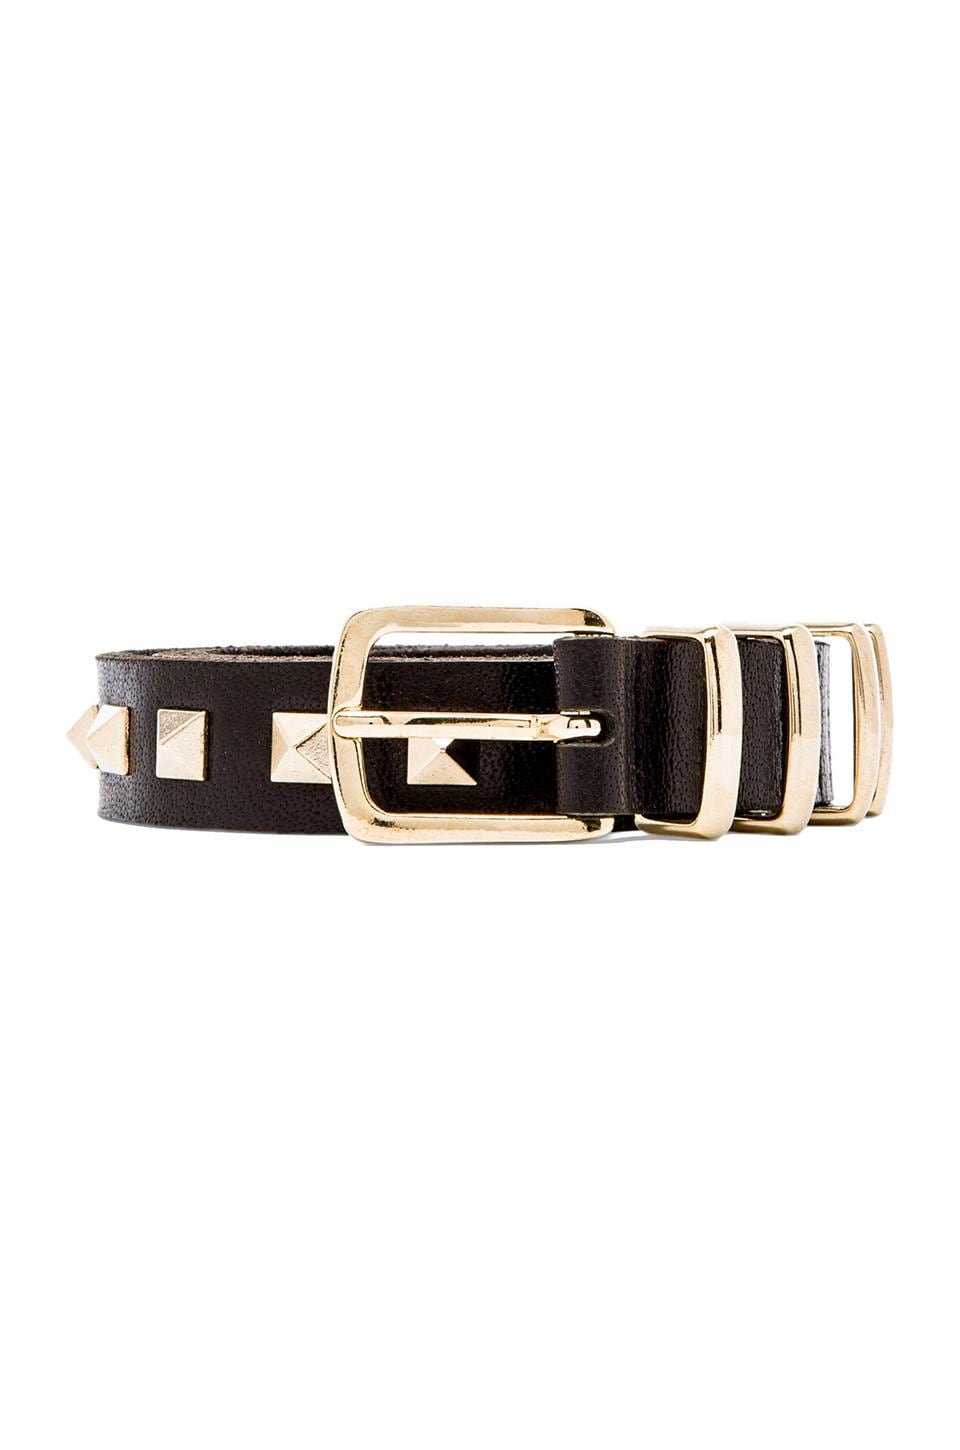 ANINE BING Gold Studded Belt in Black